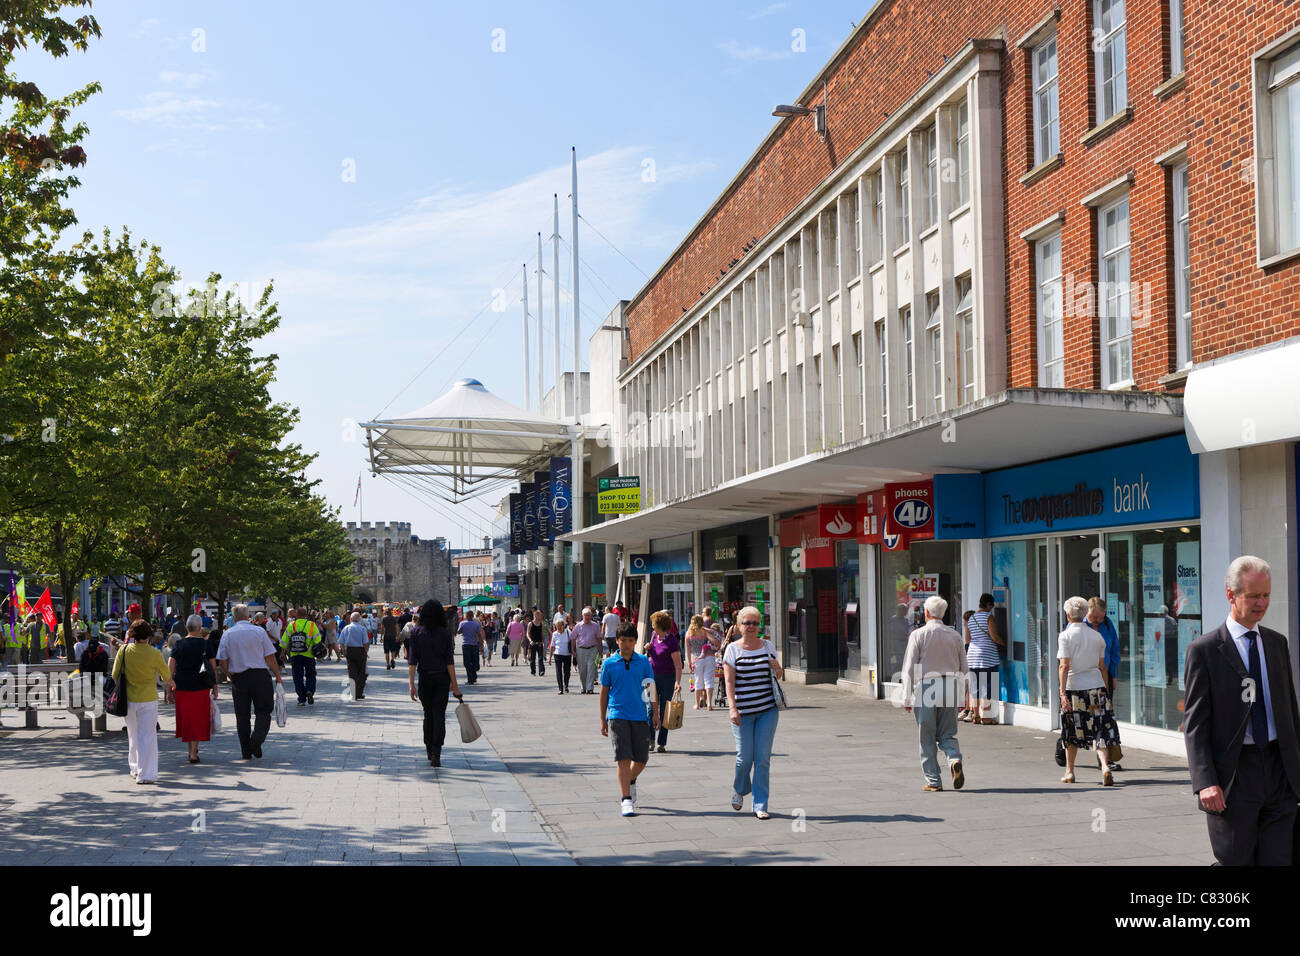 Shops in the main shopping area, Above Bar Street on the QEII Mile, Southampton, Hampshire, England, UK Stock Photo